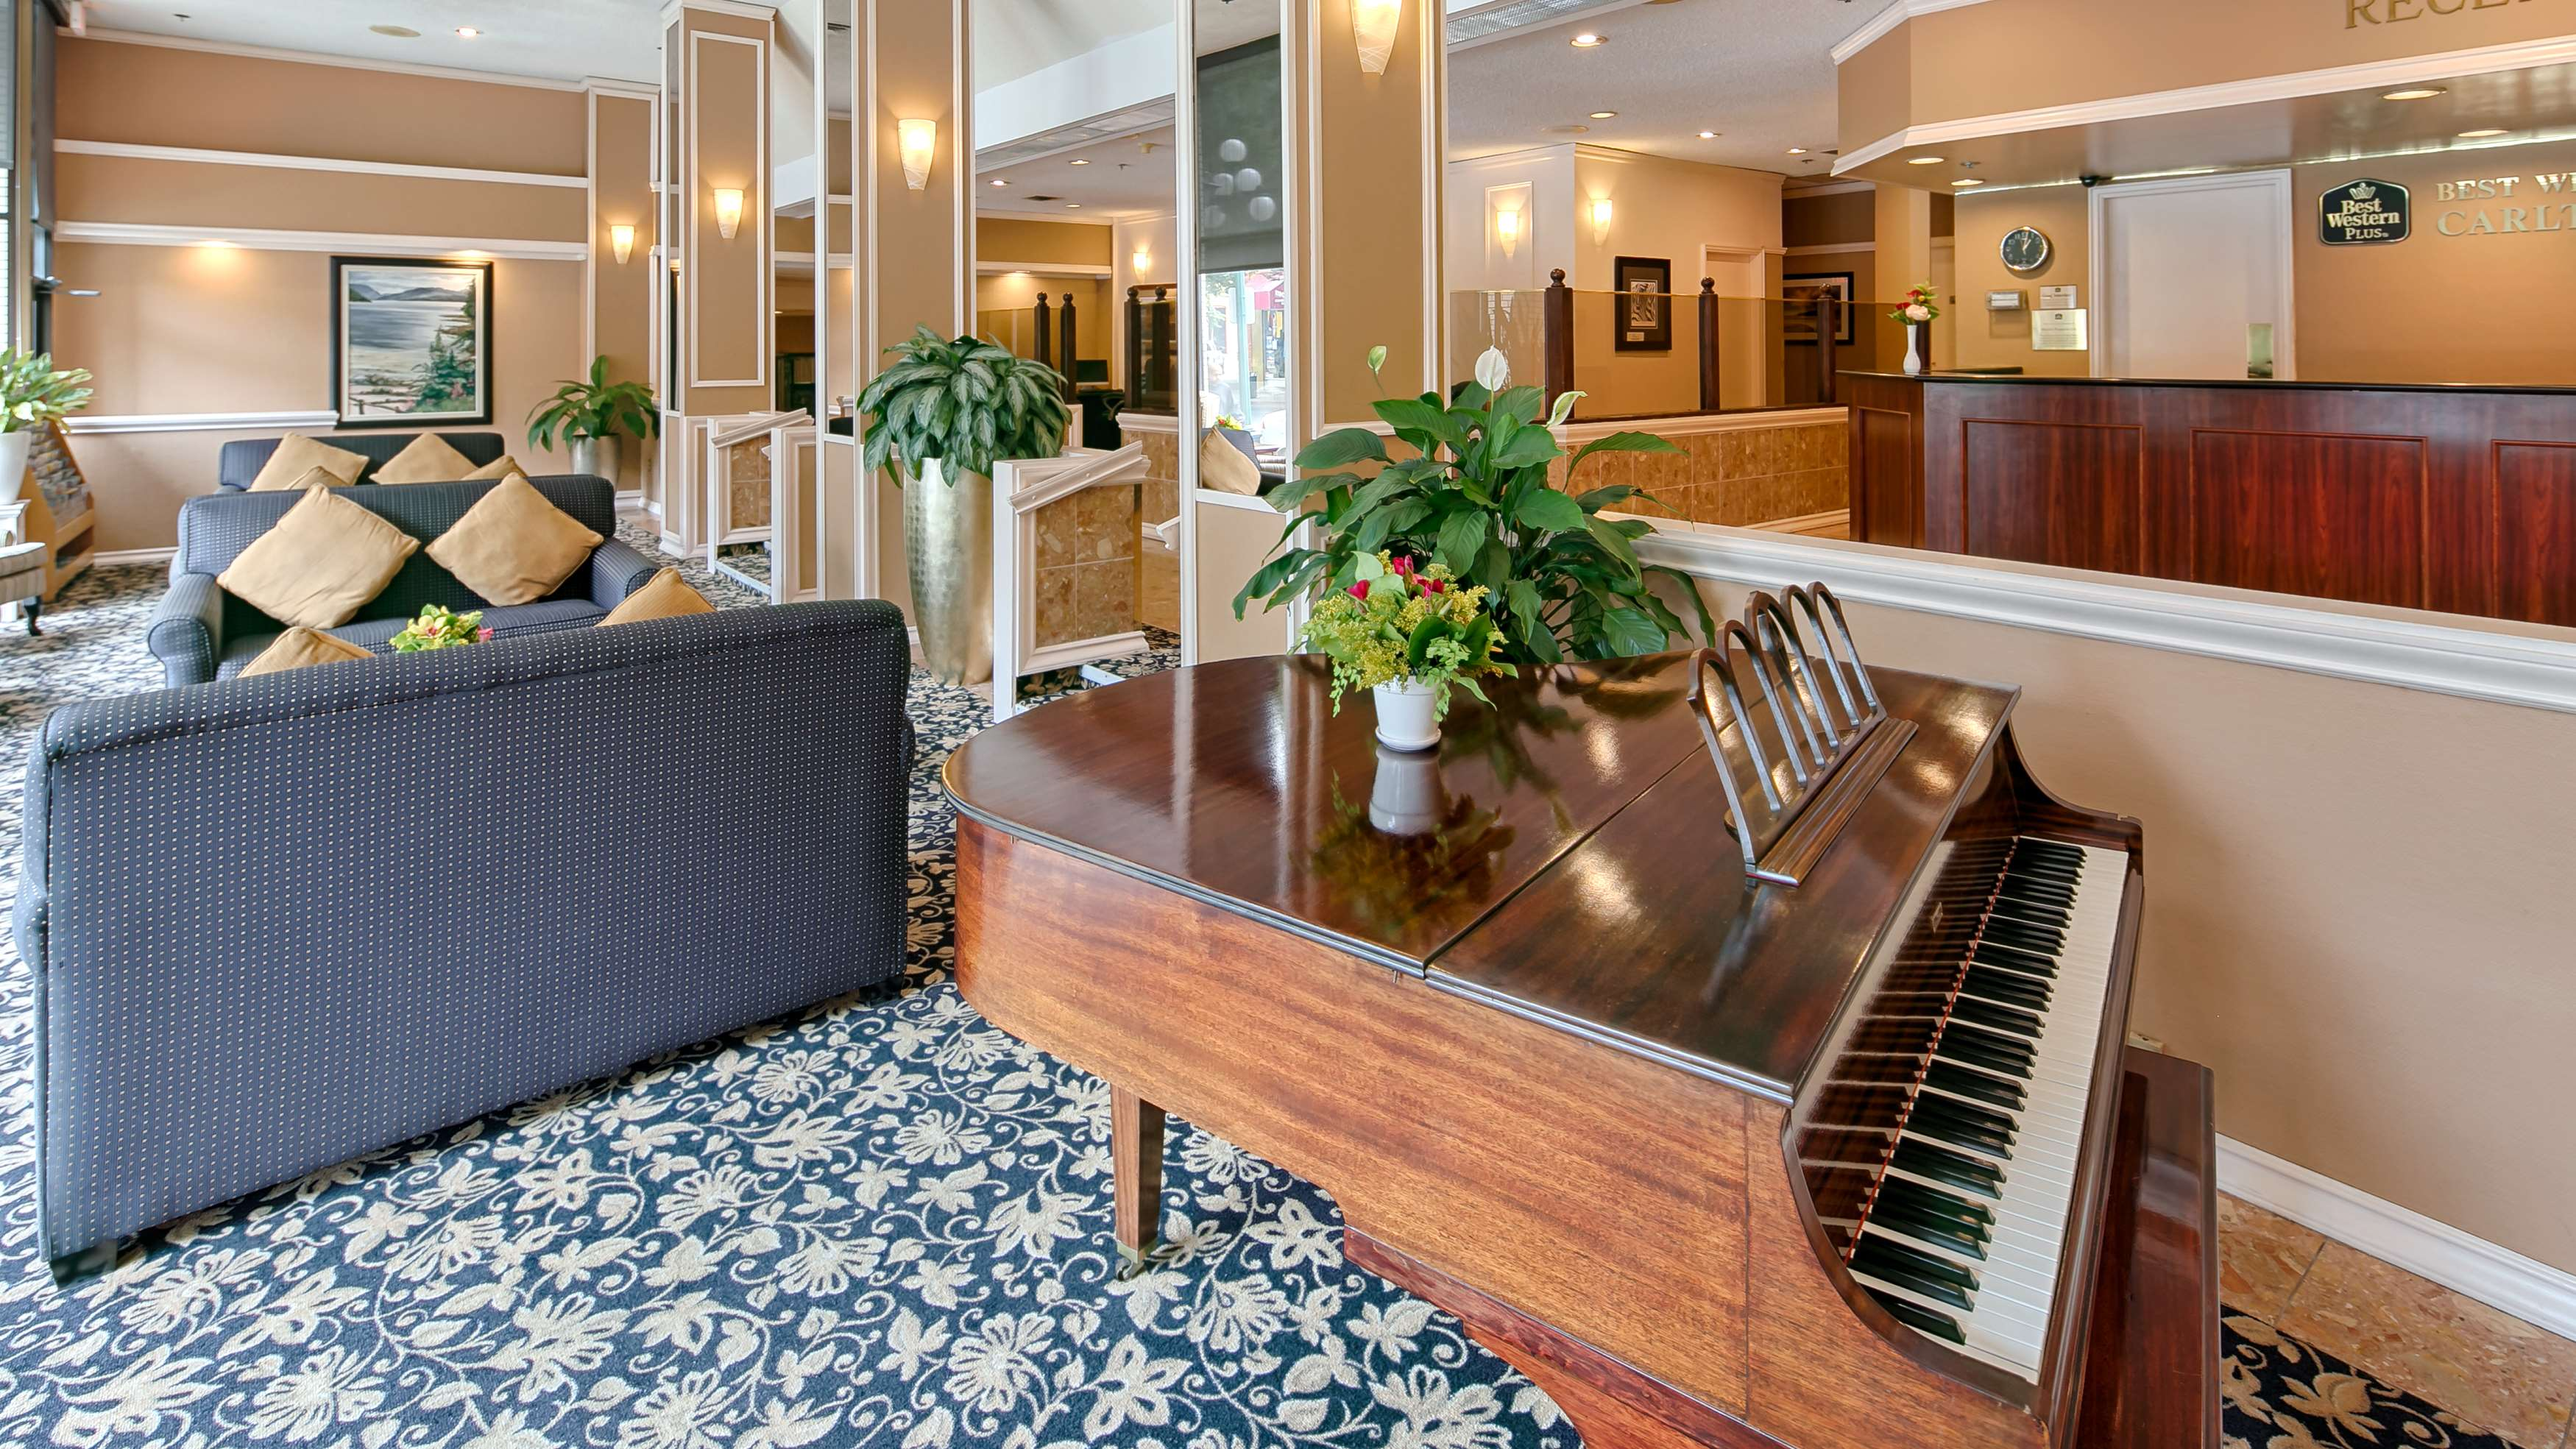 Best Western Plus Carlton Plaza Hotel in Victoria: Lobby